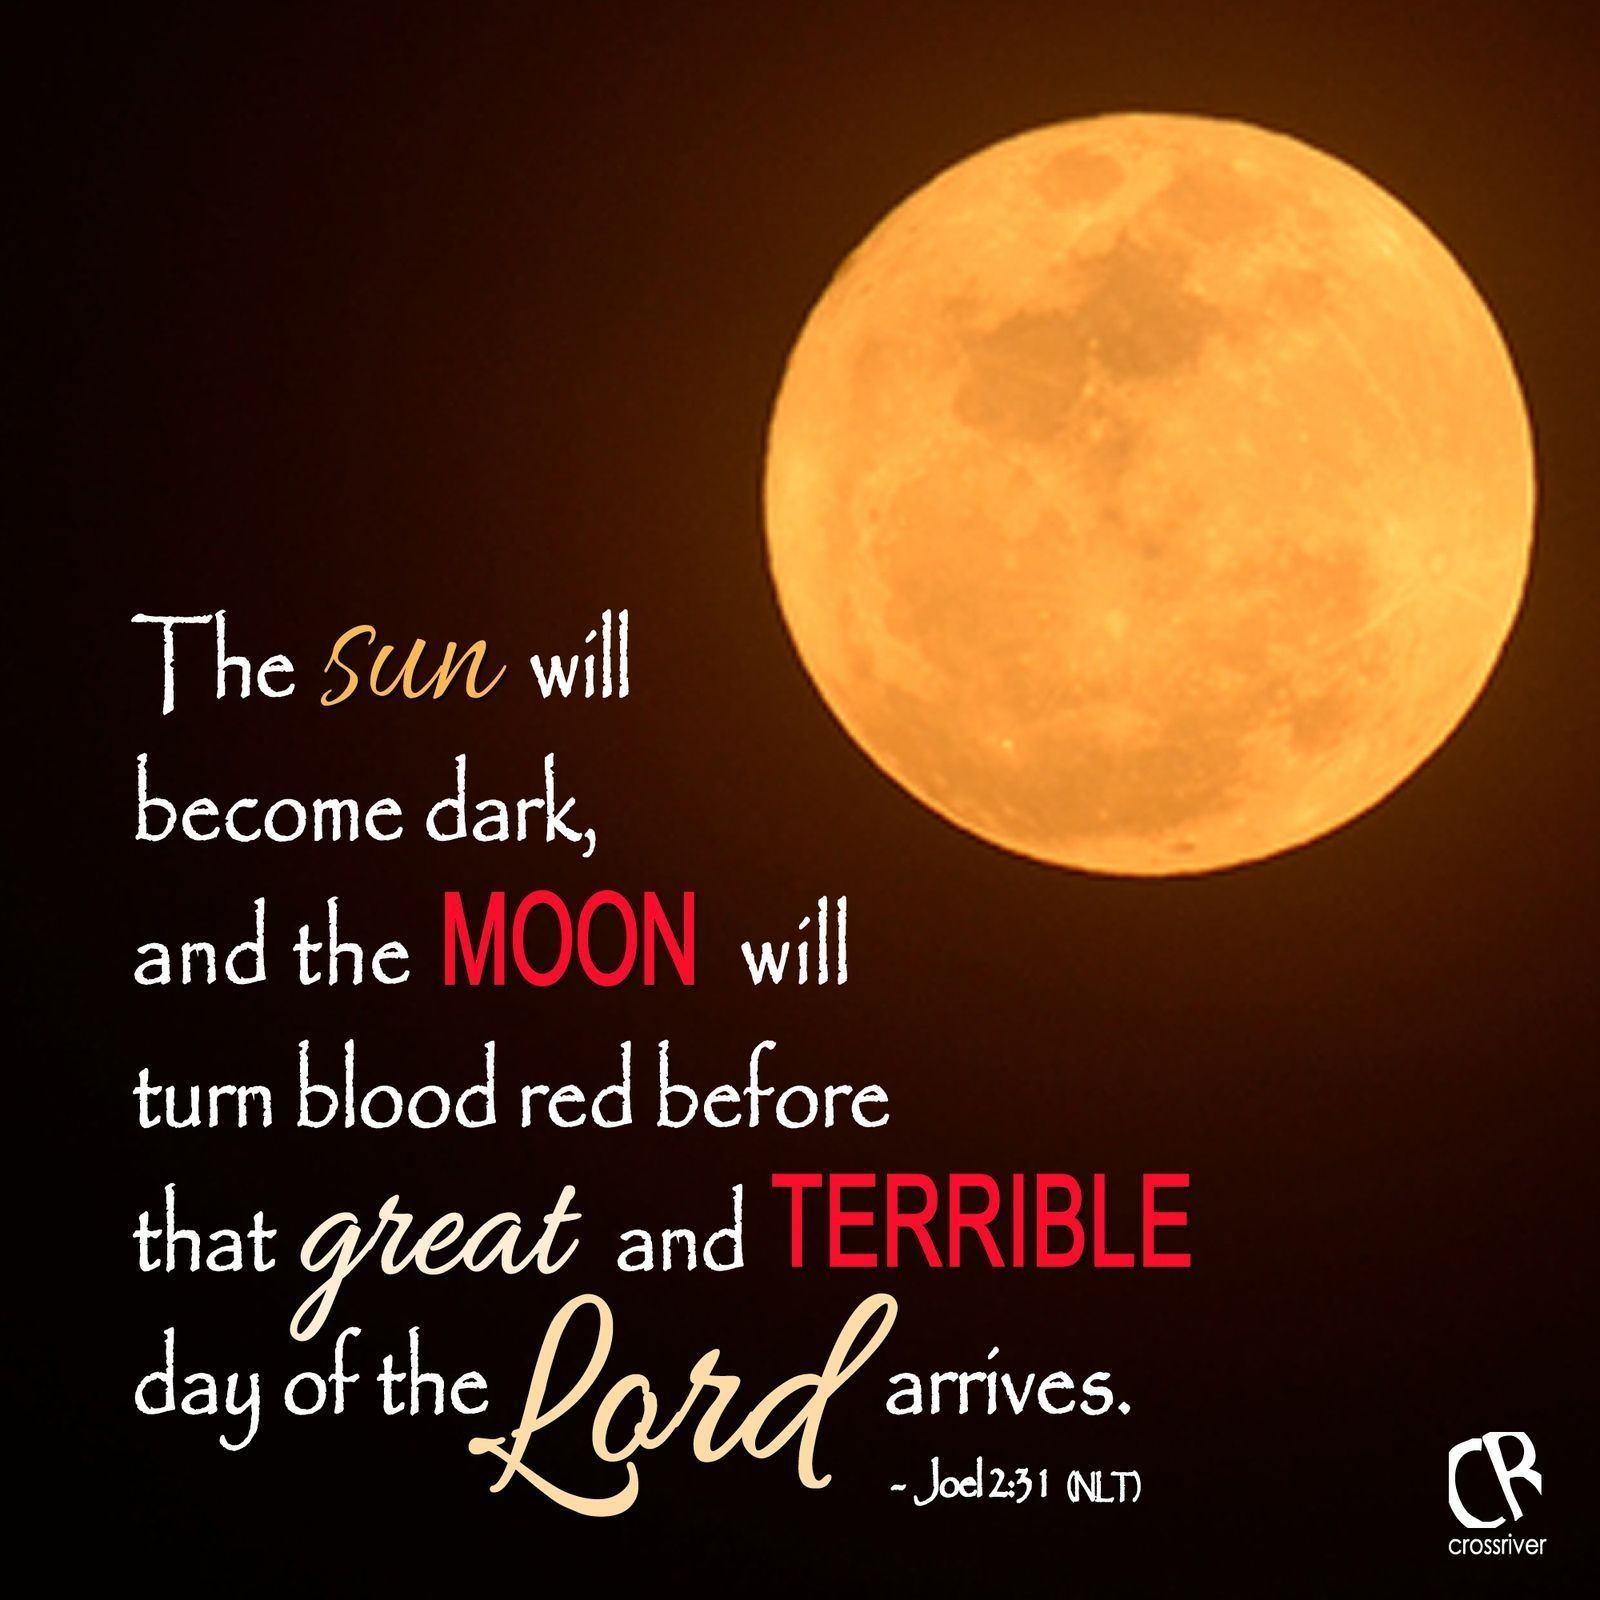 The sun will become dark, and the moon will turn blood red before that great and terrible day of the Lord arrives. - Joel 2:31 #NLT #Bible verse | CrossRiverMedia.com